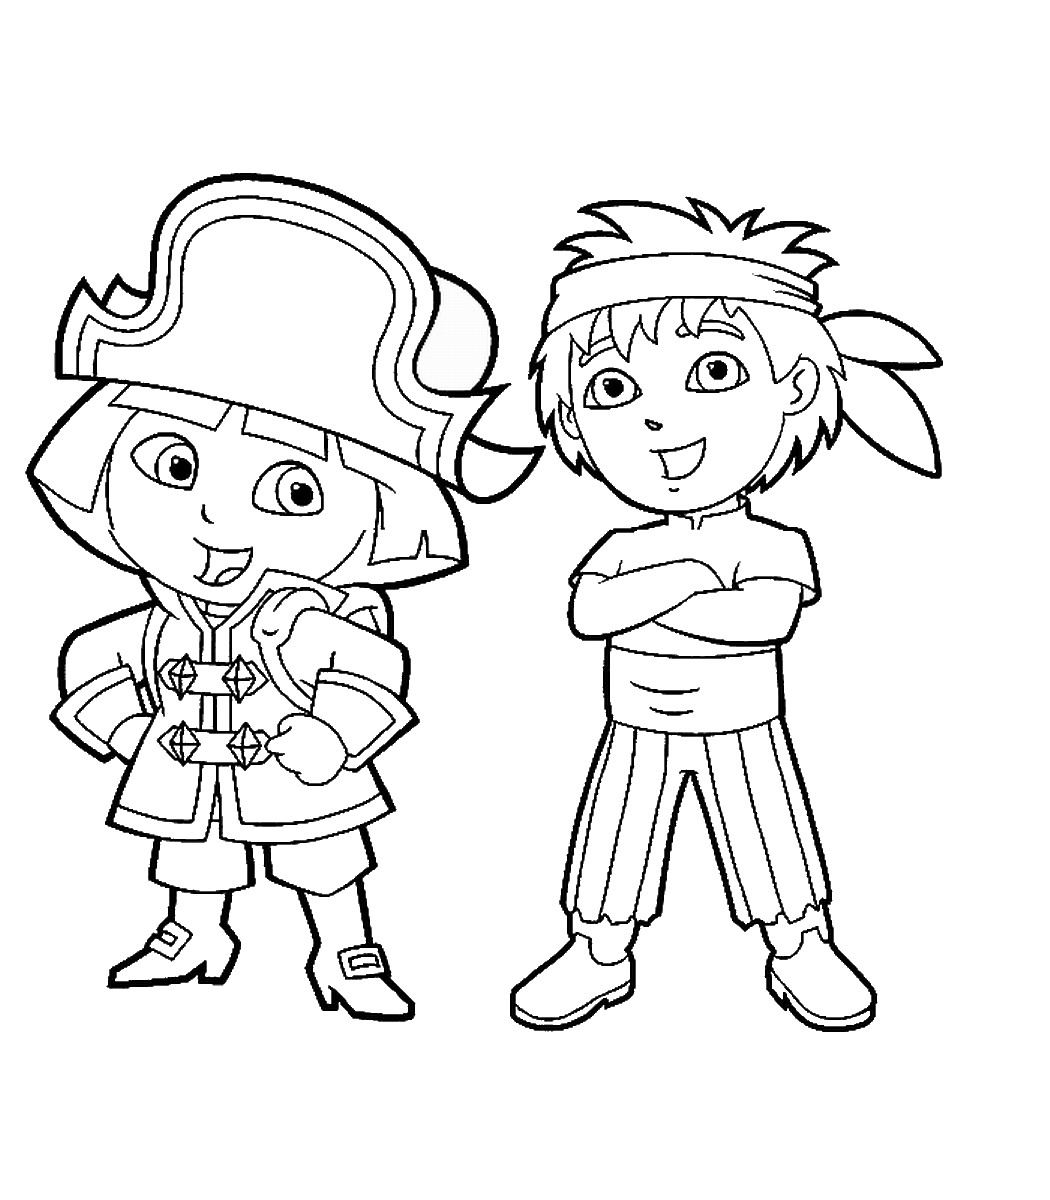 dora pictures to color and print 19 dora coloring pages pdf png jpeg eps free print pictures and color to dora